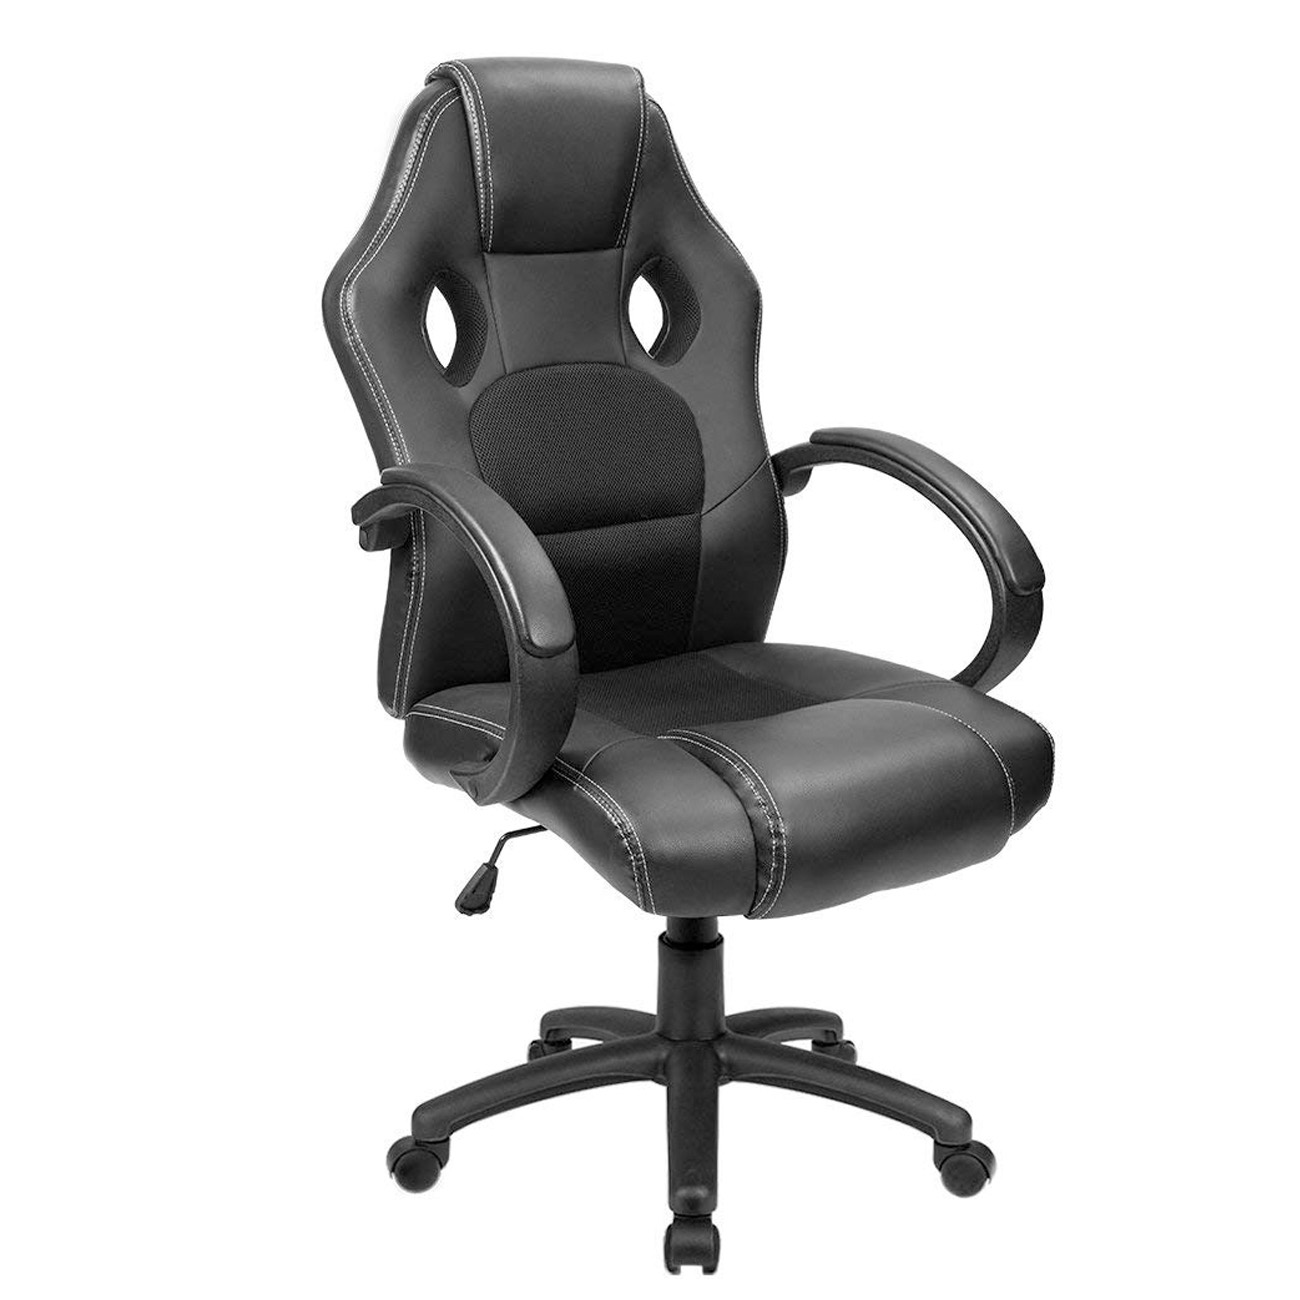 Brilliant Furmax Office Chair Desk Leather Gaming Chair High Back Ergonomic Adjustable Racing Chair Task Swivel Executive Computer Chair Headrest And Lumbar Ncnpc Chair Design For Home Ncnpcorg